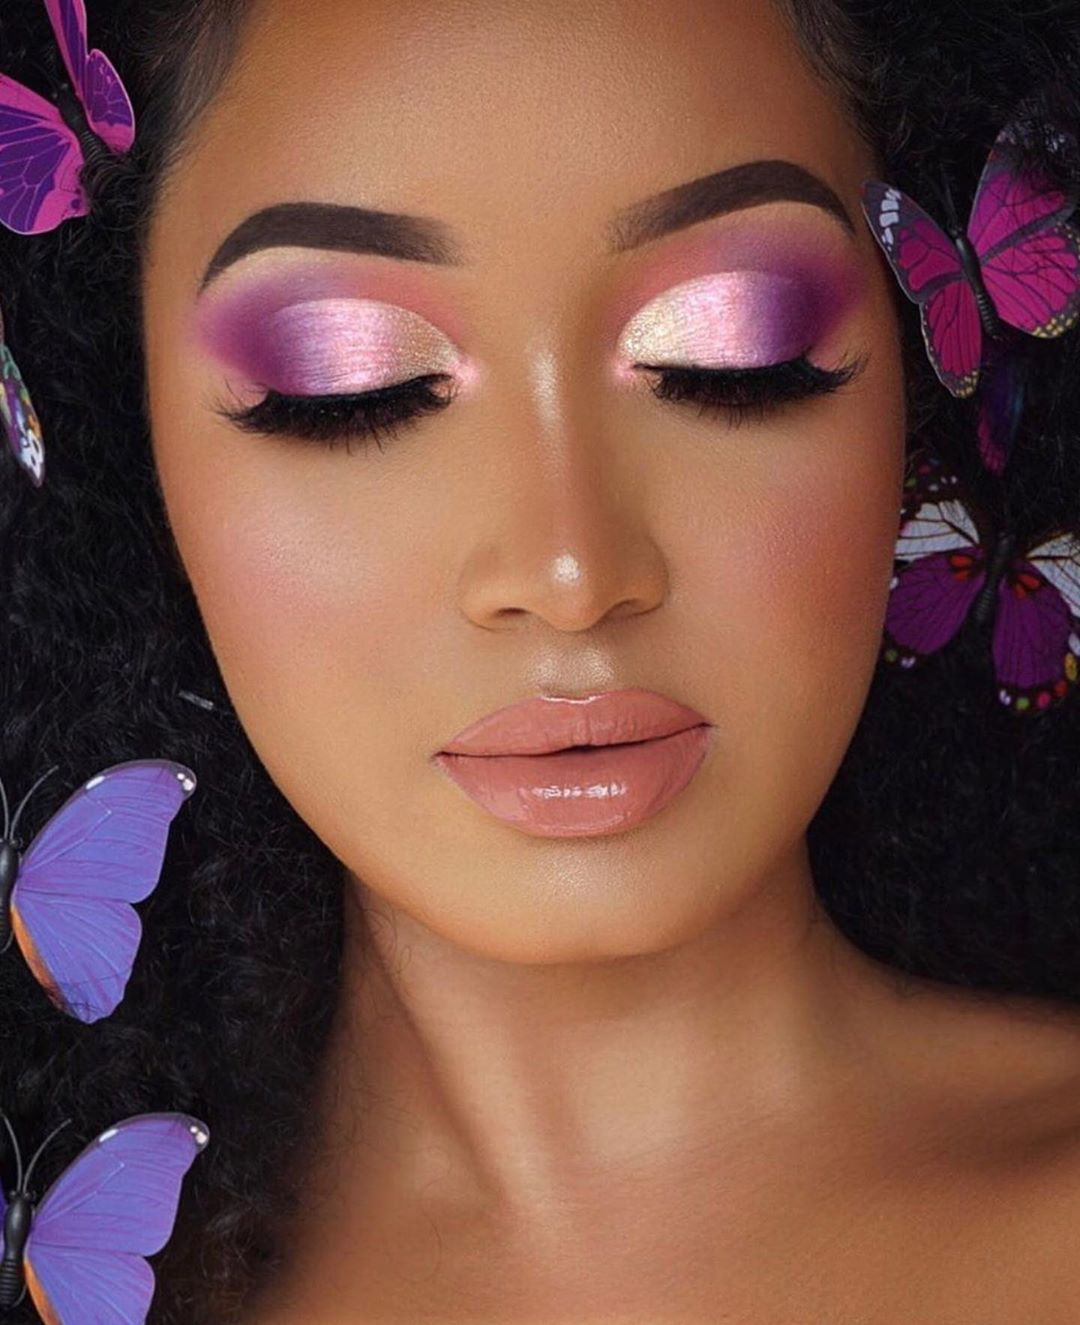 this look by annybeeutee using the Mini Stormi Palette